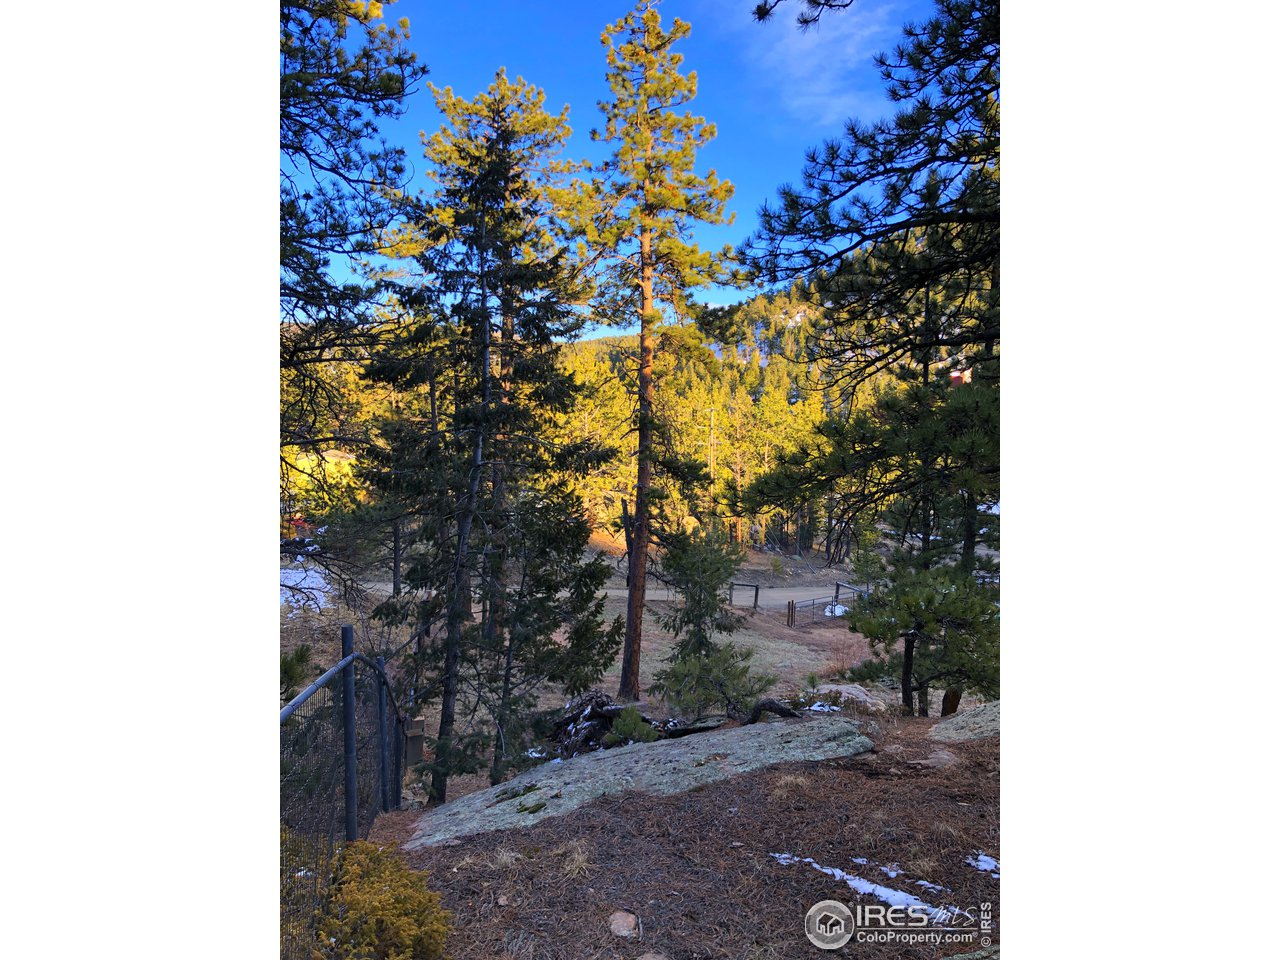 Instant access to Roosevelt National Forest